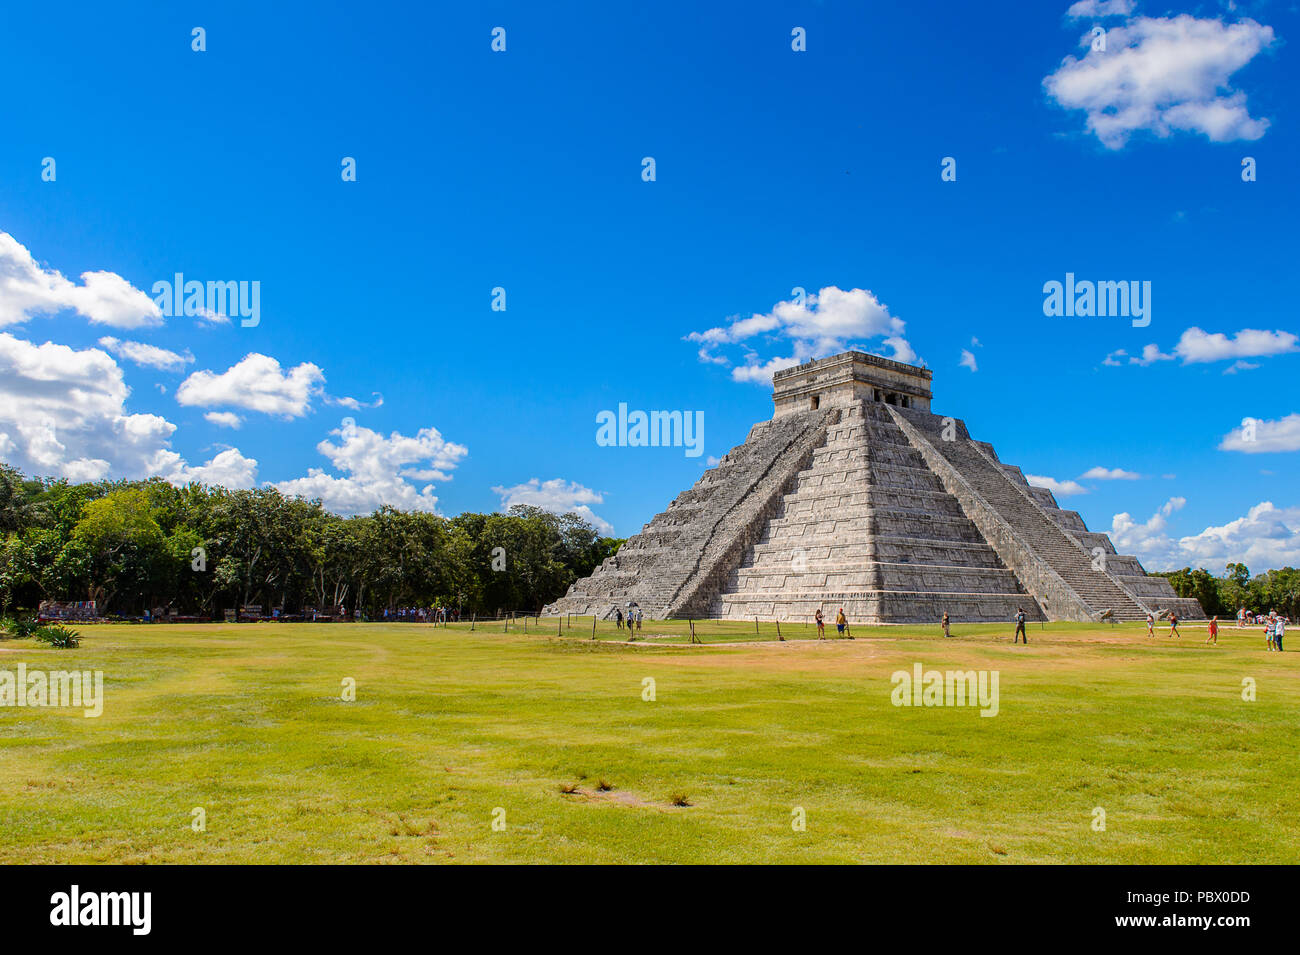 El Castillo (Temple of Kukulcan),  a Mesoamerican step-pyramid, Chichen Itza. It was a large pre-Columbian city built by the Maya people of the Termin Stock Photo